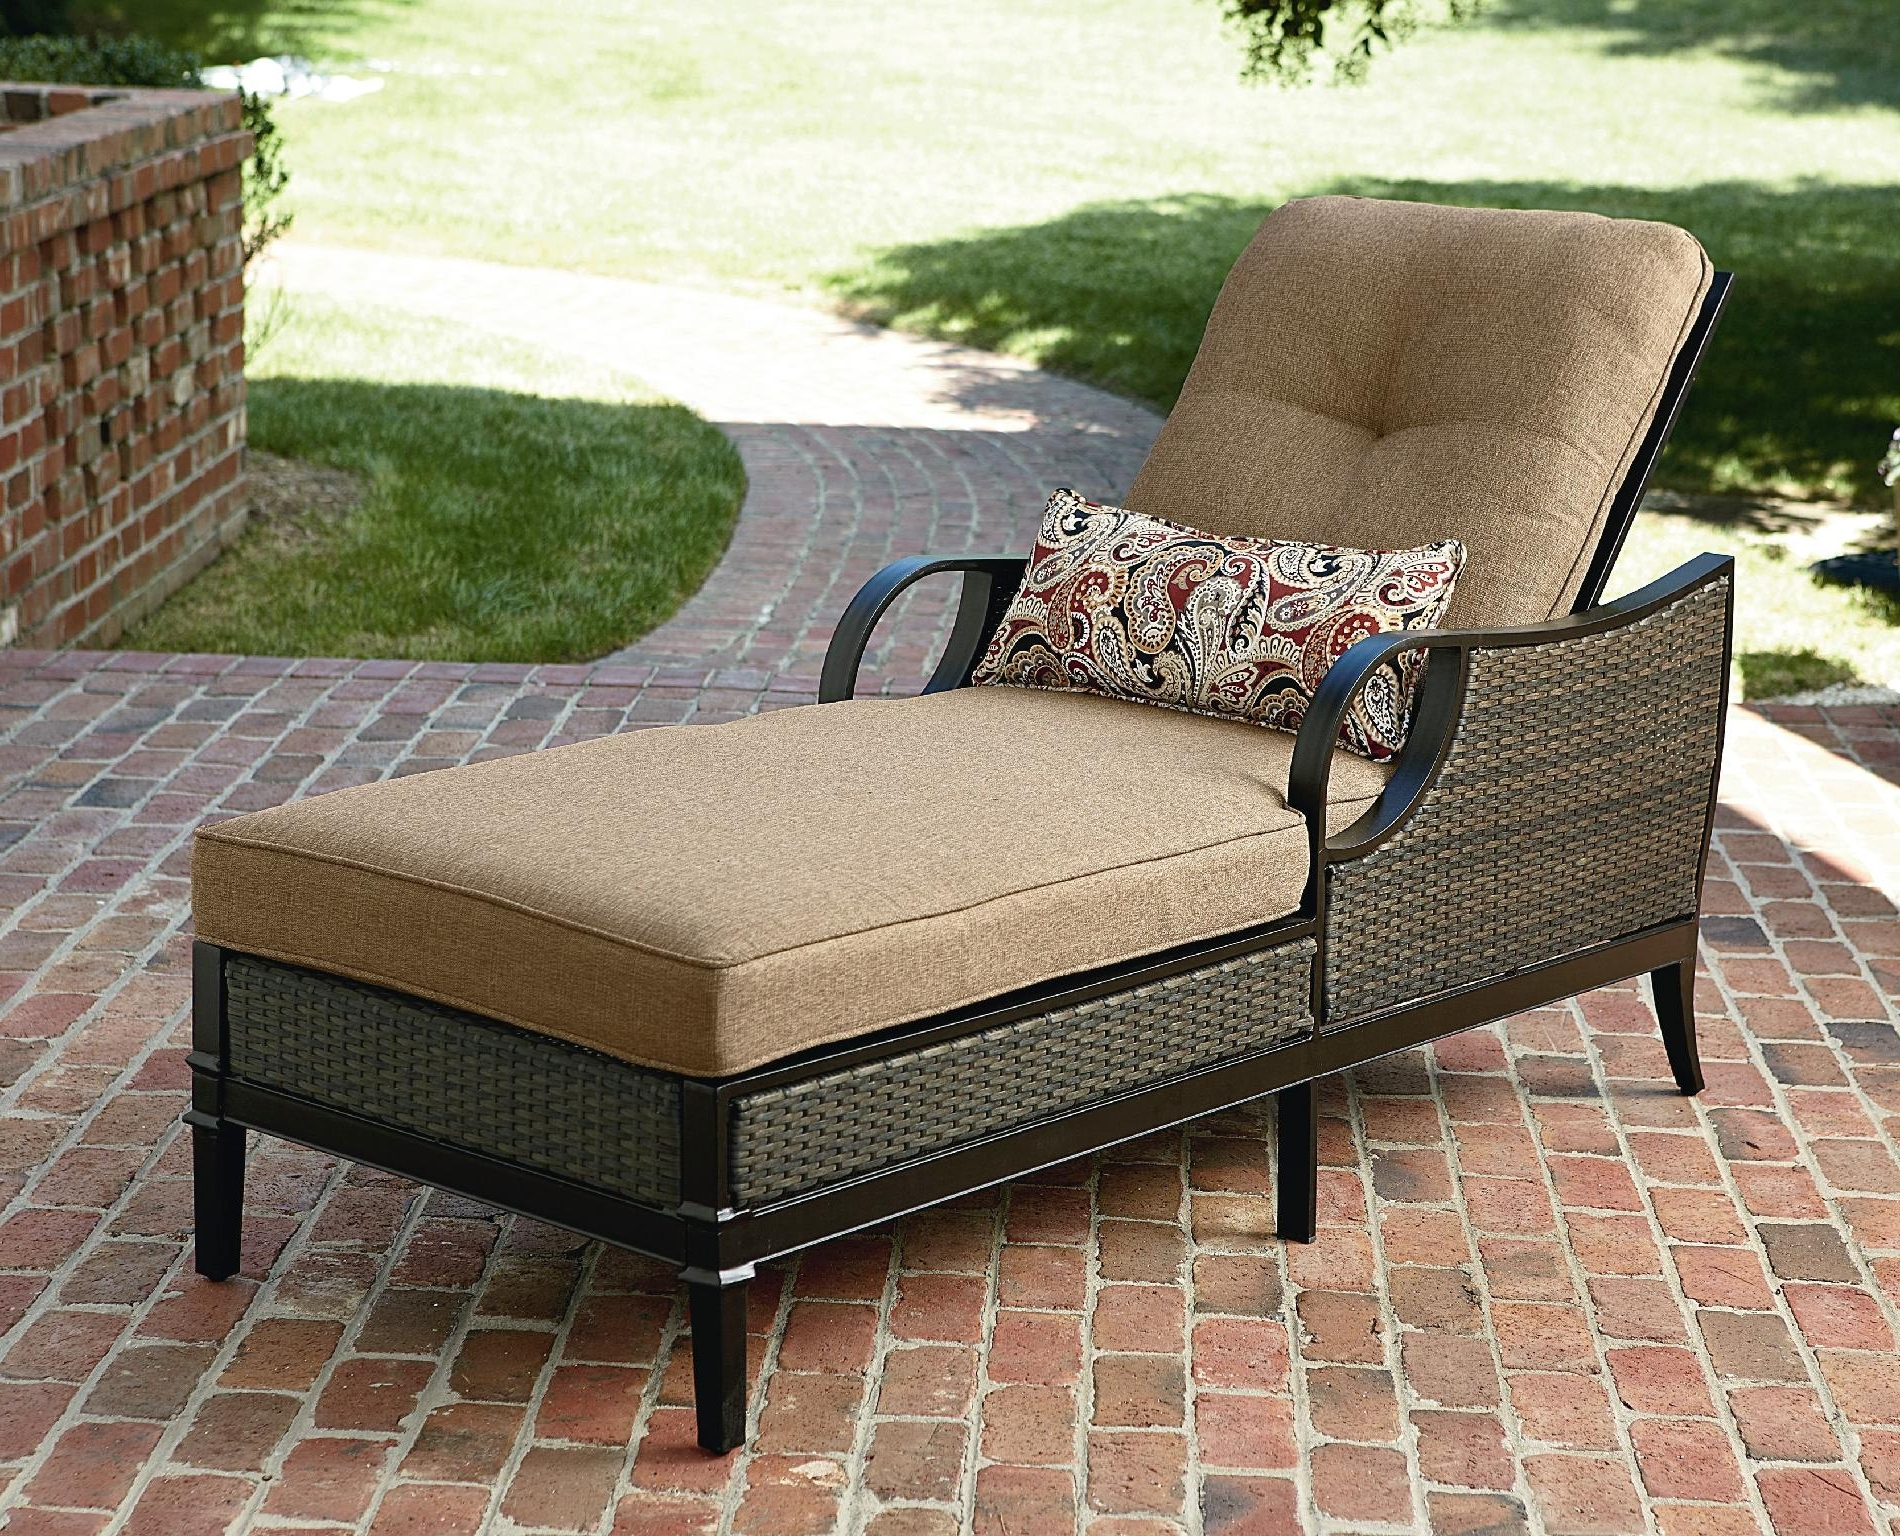 Preferred Outdoor Chaise Lounge Chairs With Arms Intended For Chaise Lounge Chairs For Patio • Lounge Chairs Ideas (View 13 of 15)